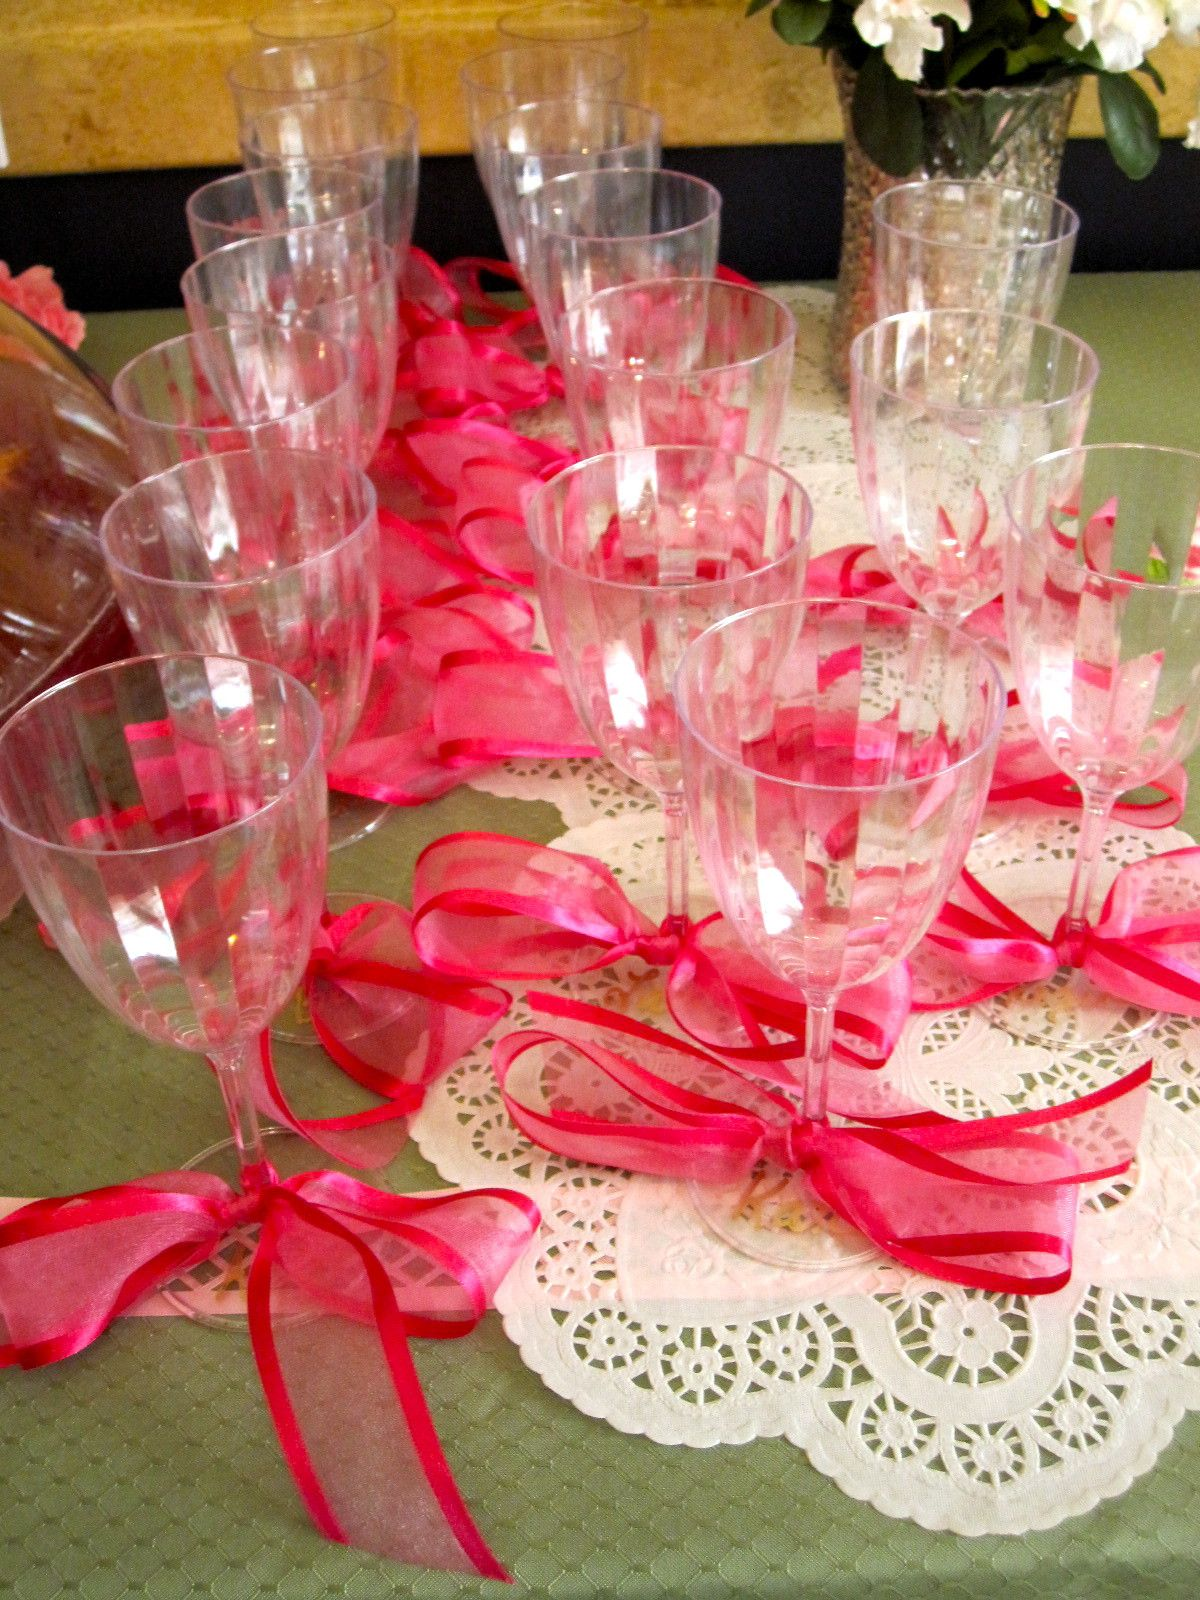 Bridal shower drink cups with bows. | My Bridal Shower | Pinterest ...